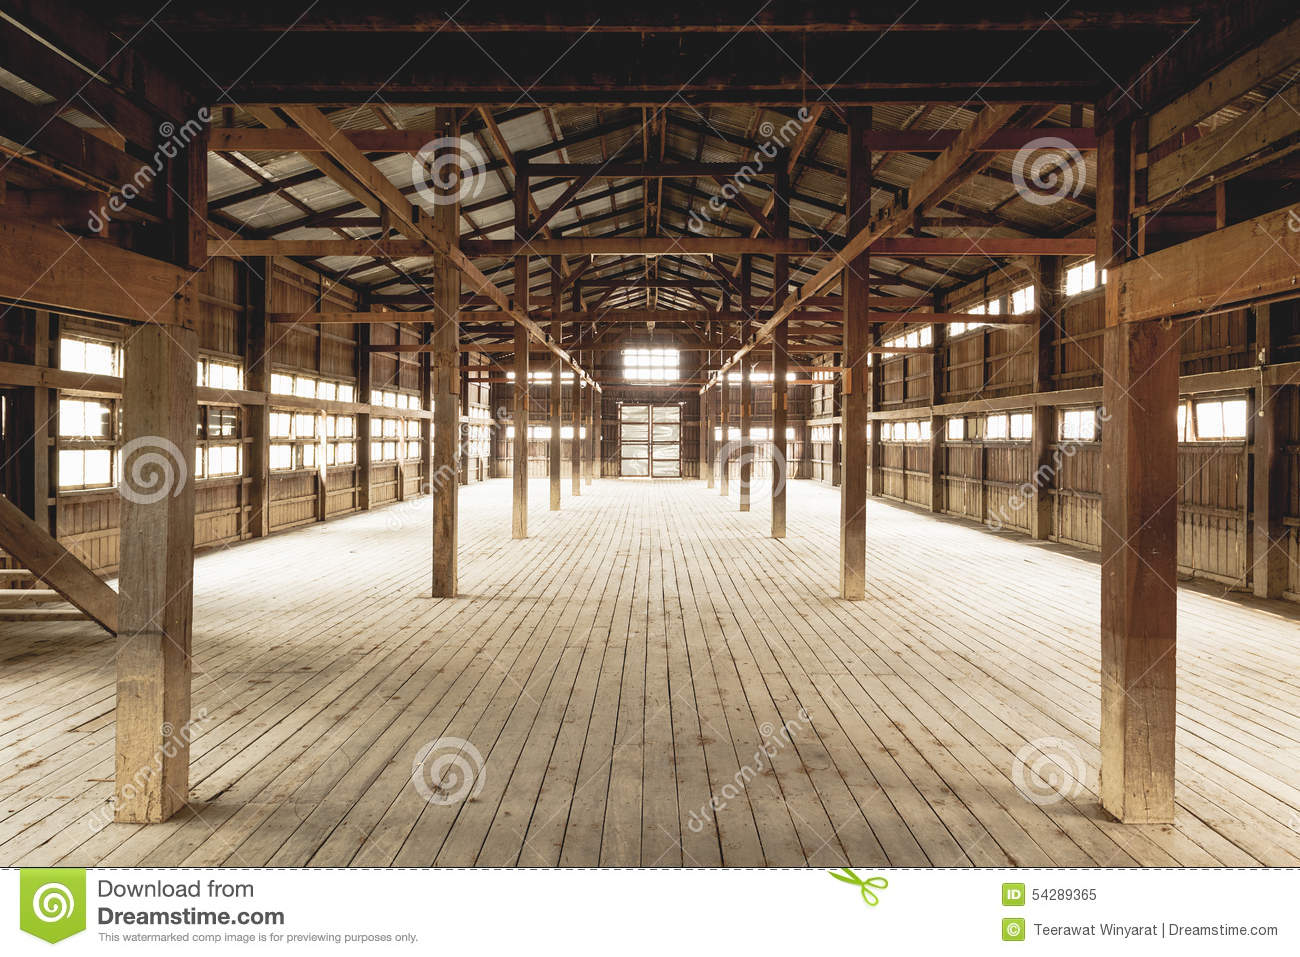 Barn interior wooden construction stock image image of for Wood barn construction